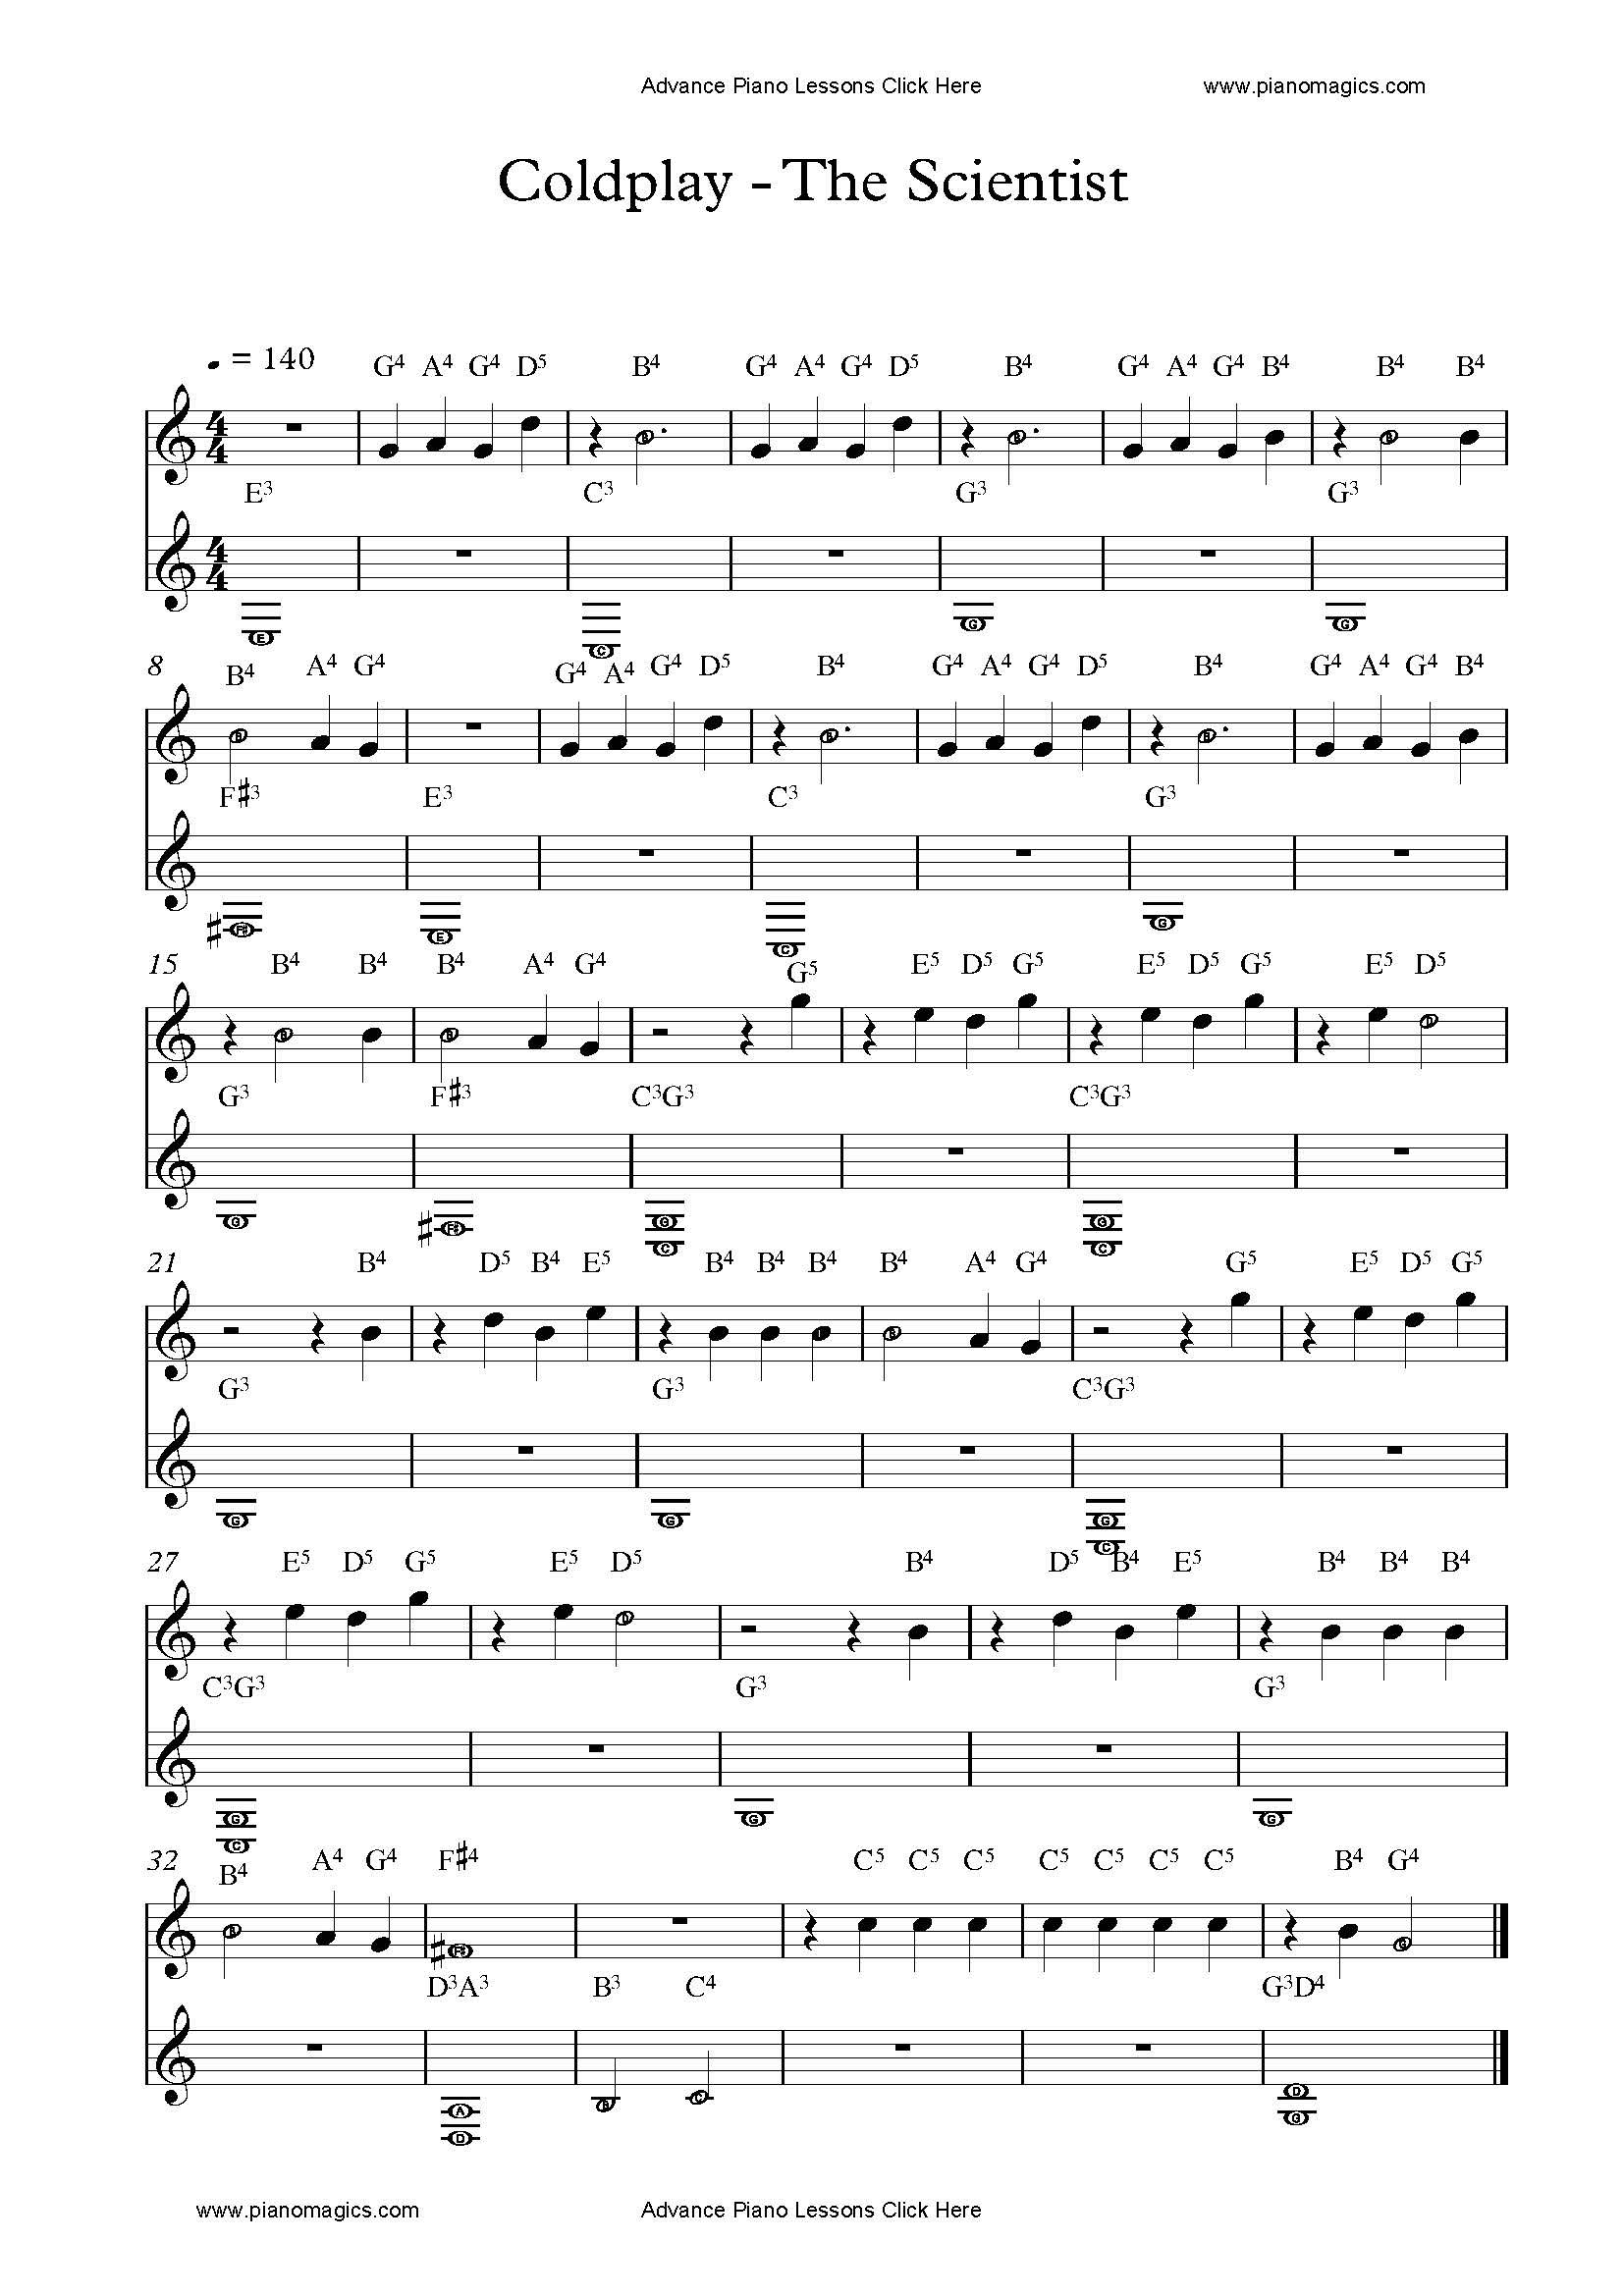 Get Your The Scientist Piano Sheet With Note Names Piano Sheet